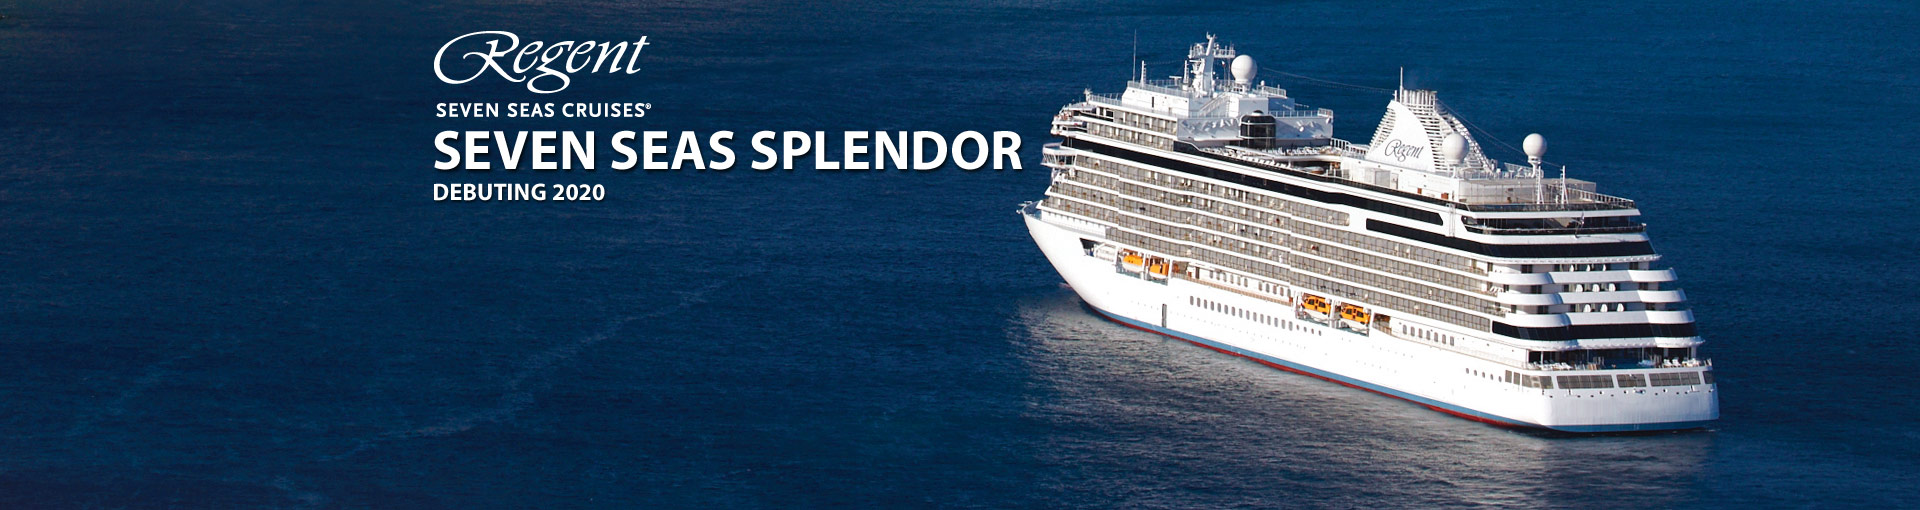 Regent Seven Seas Splendor Cruise Ship